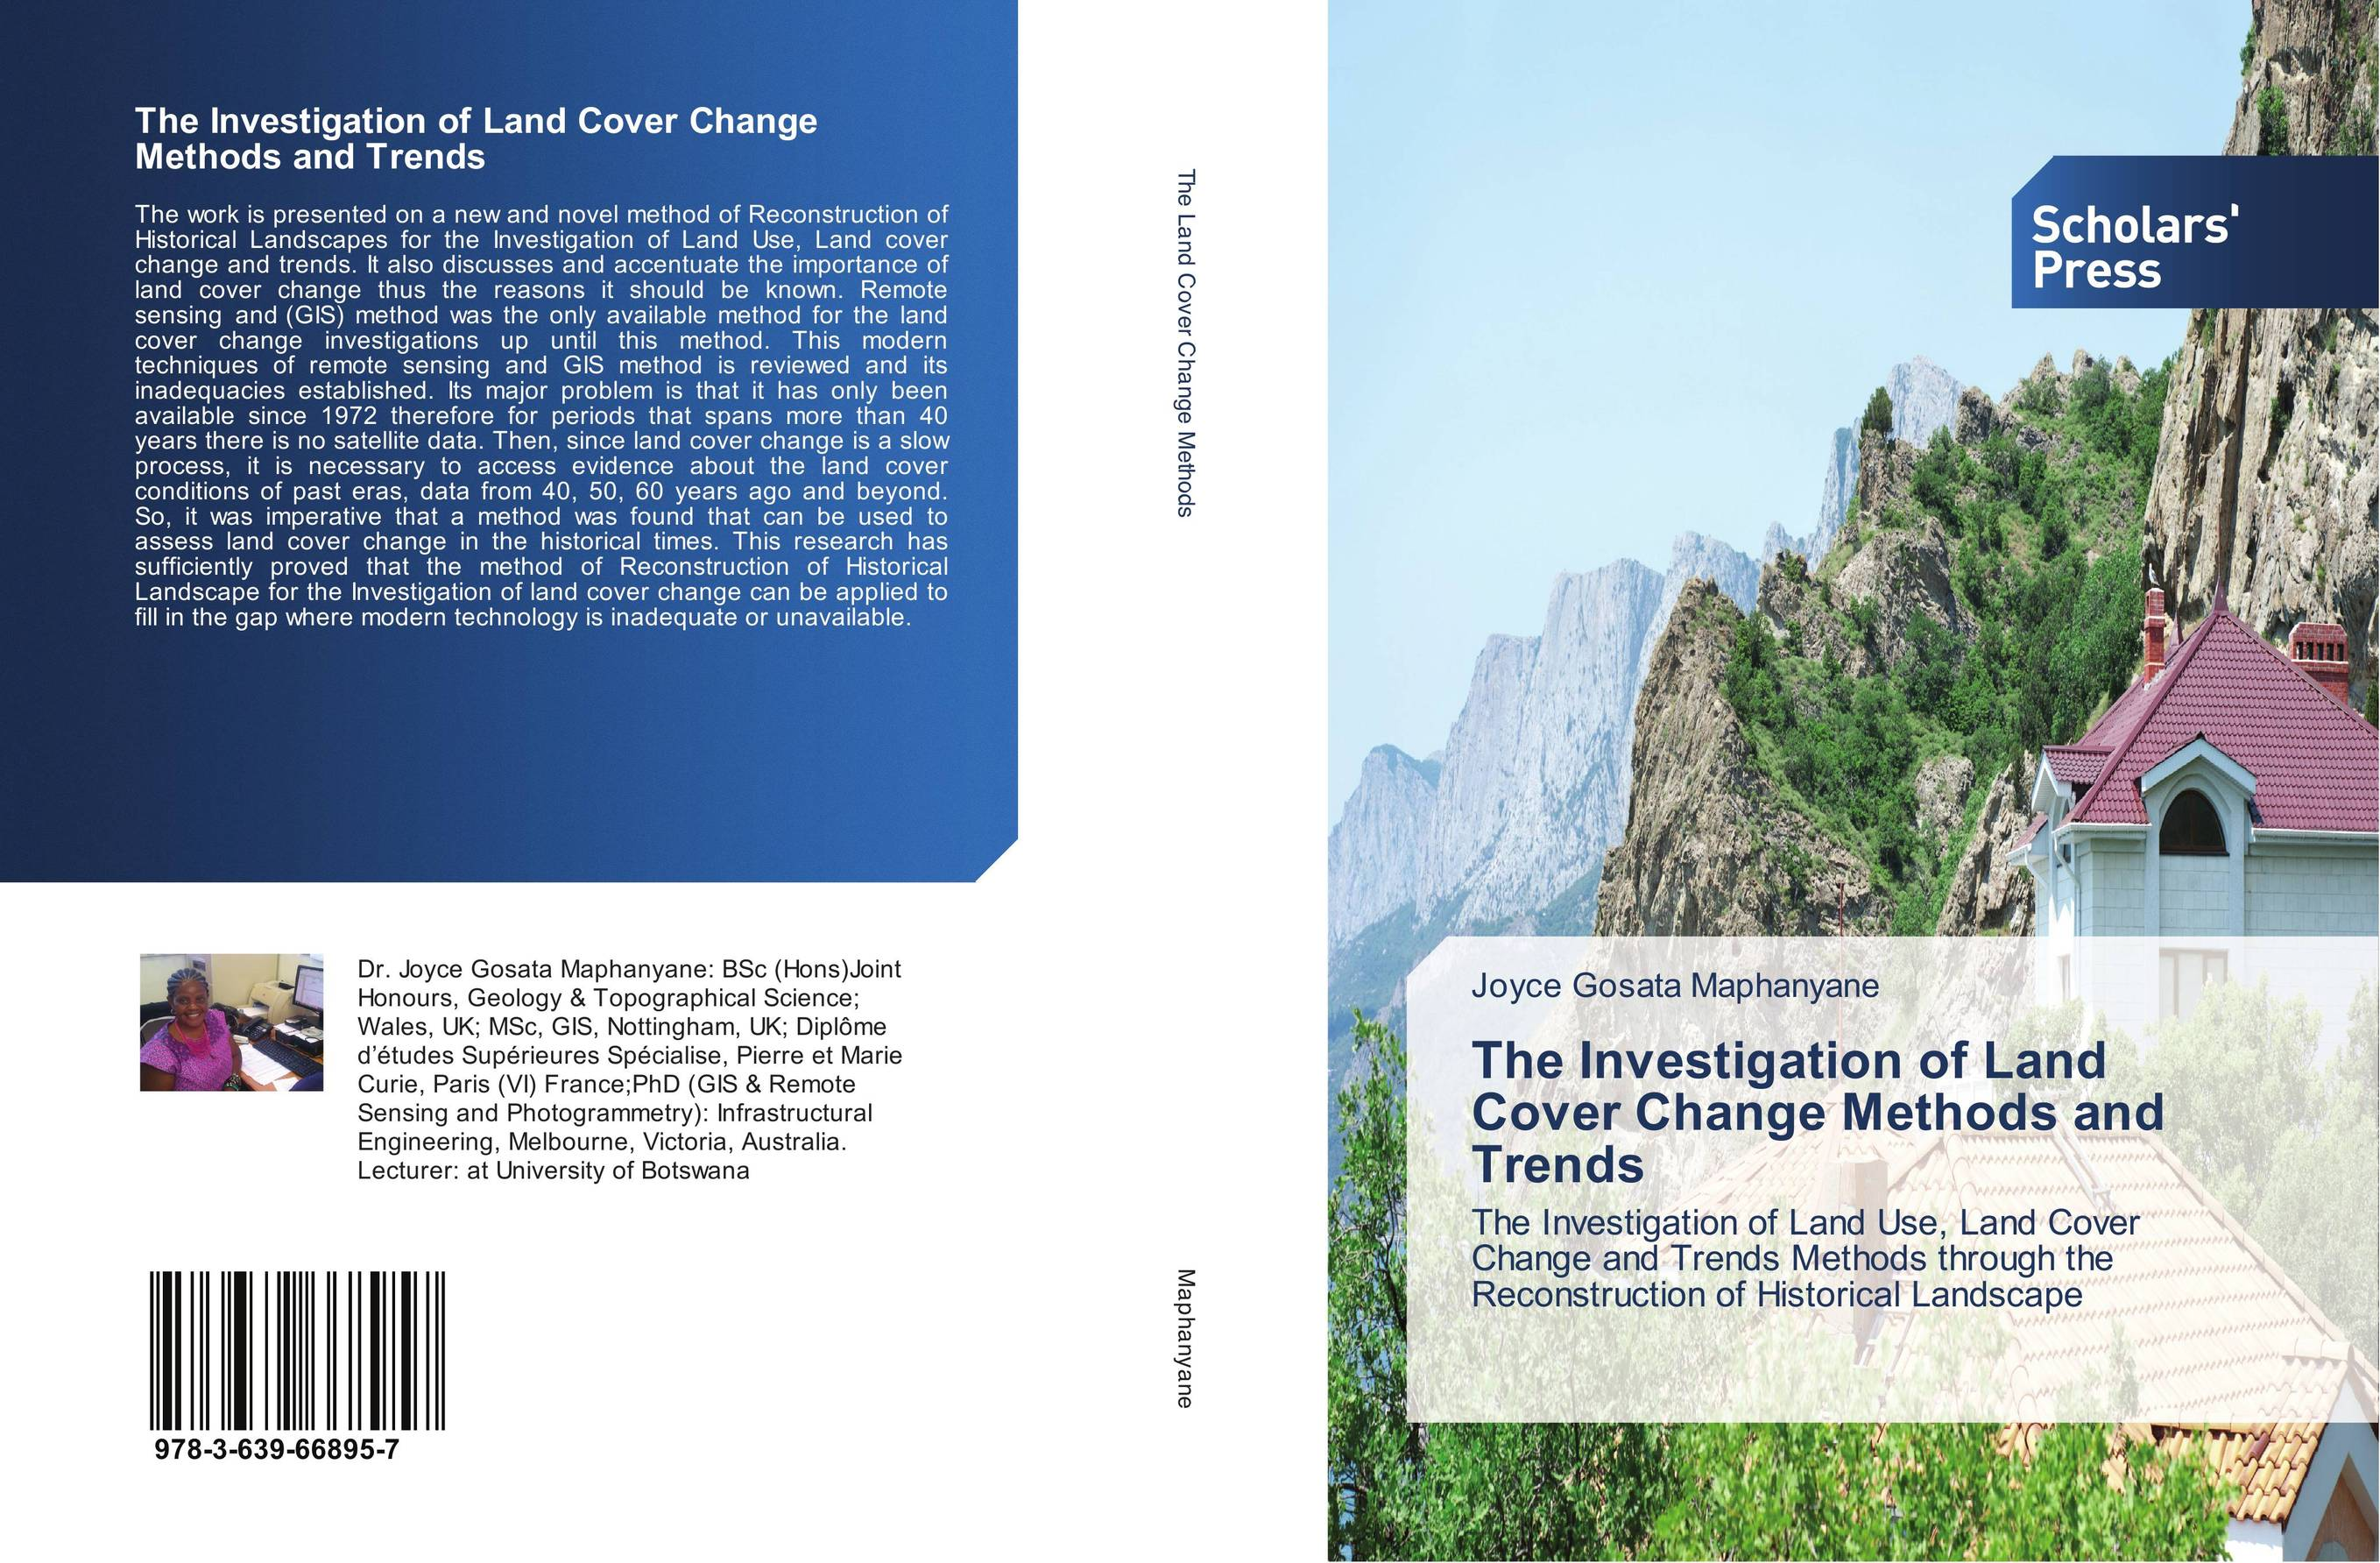 9783639668957 The Investigation of Land Cover Change Methods and Trends Joyce